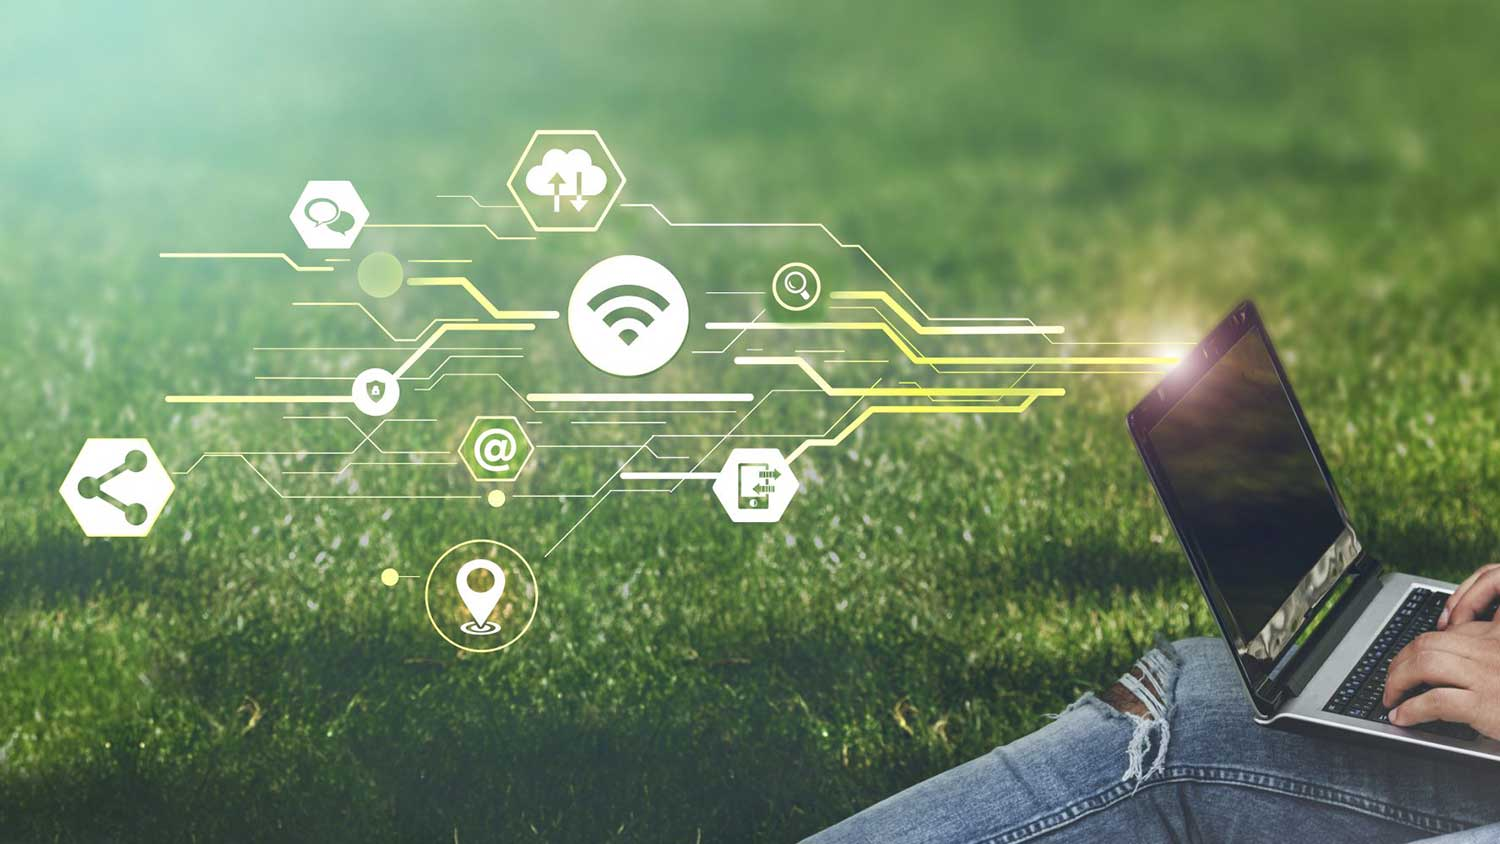 5G Network Resilience